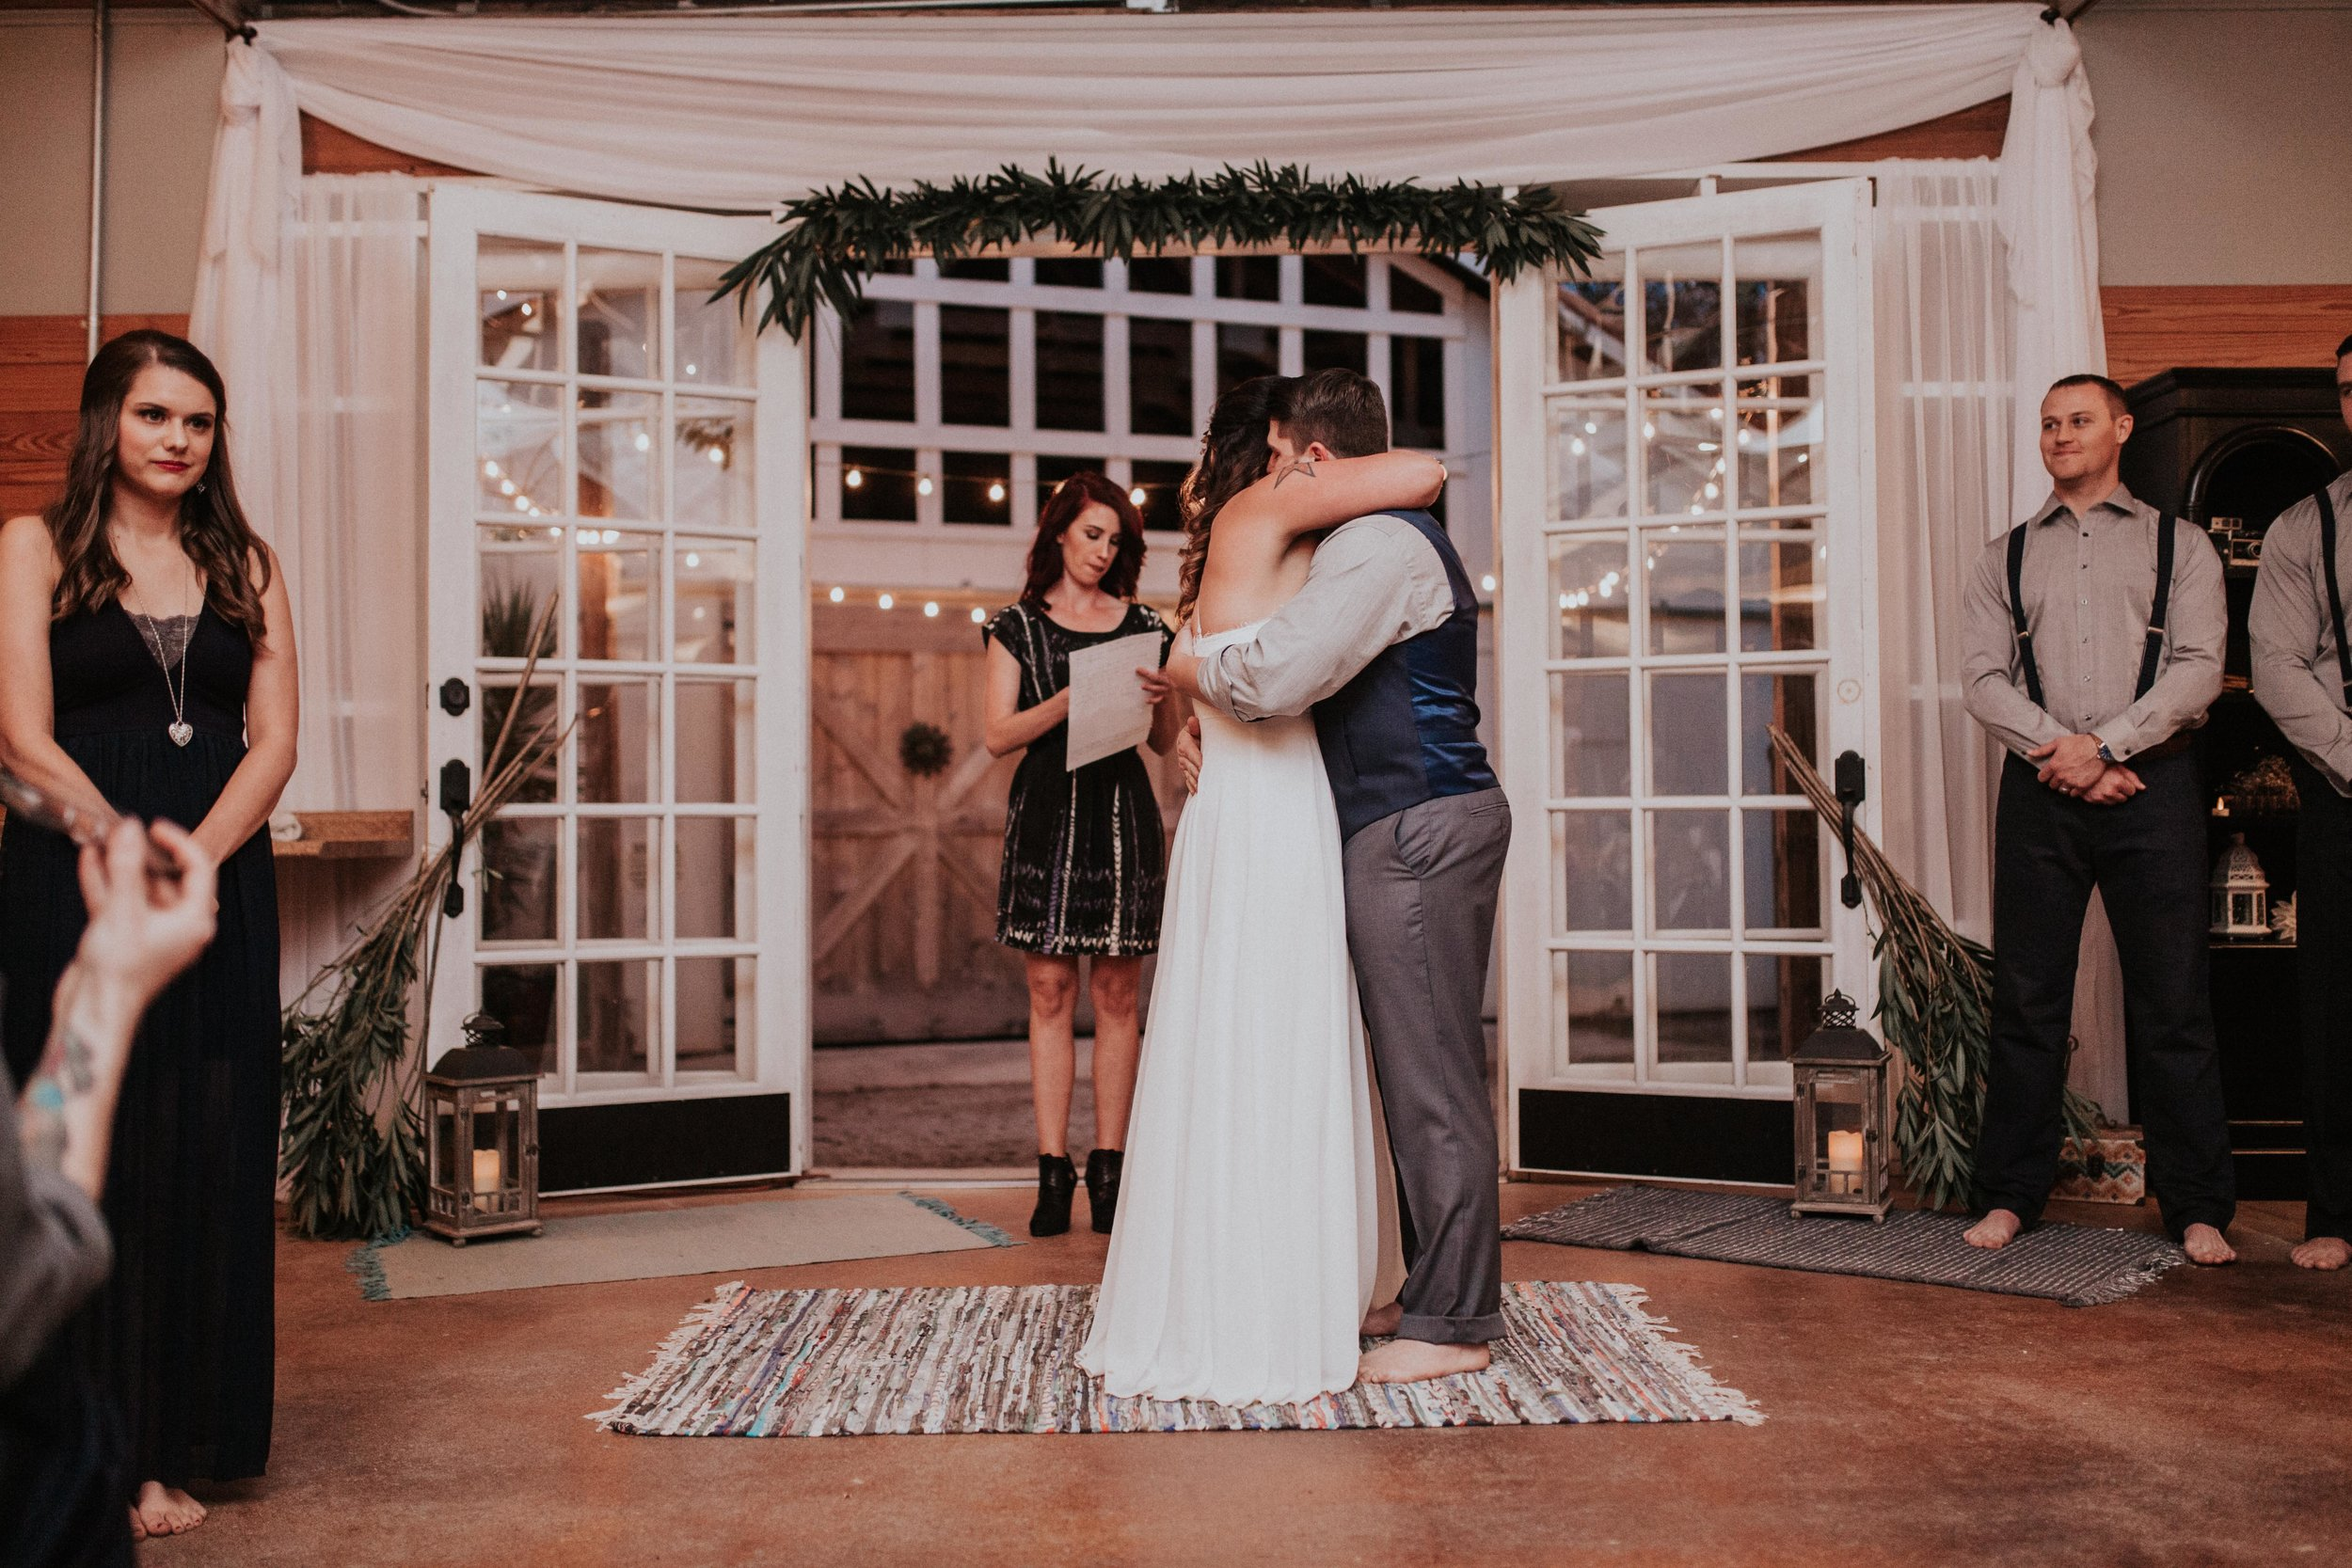 Vow Renewal in Magnolia Texas - Madeleine Frost Wedding Photographer - Sized for Blog-56.jpg